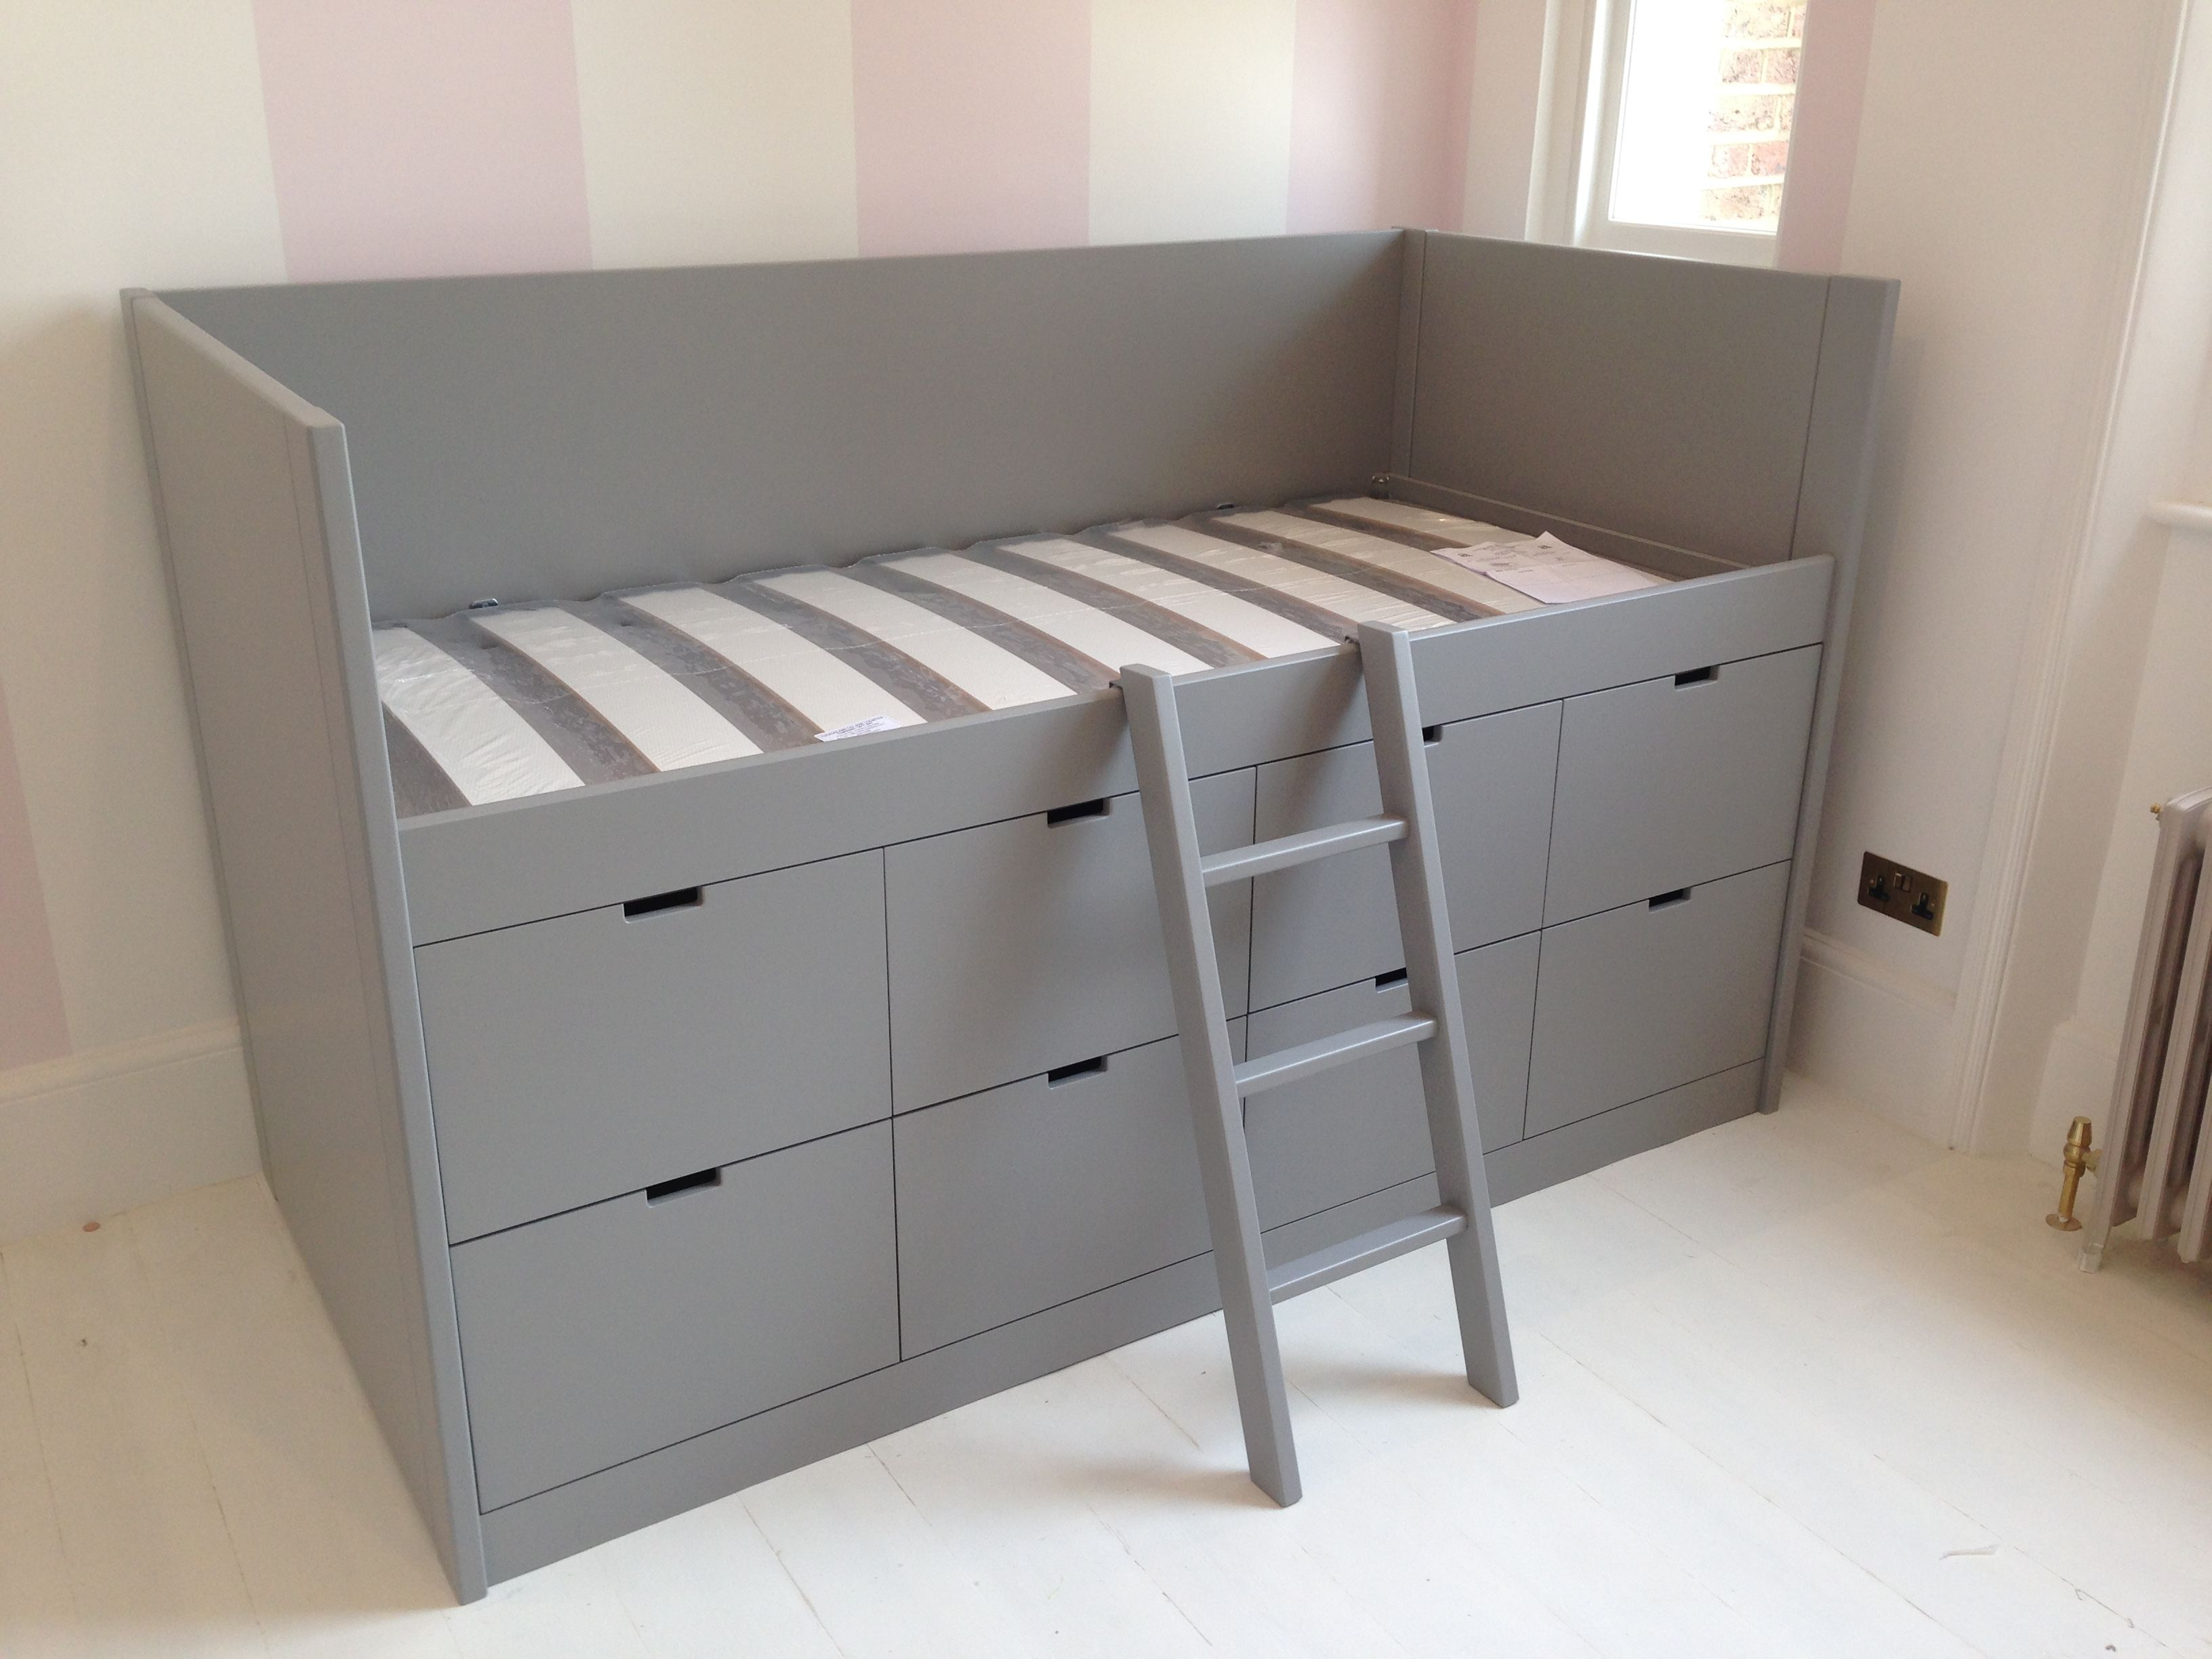 Turn crib into toddler loft bed  Pin by Oshri u aviad Levy on Bedrooms  Pinterest  Bedrooms